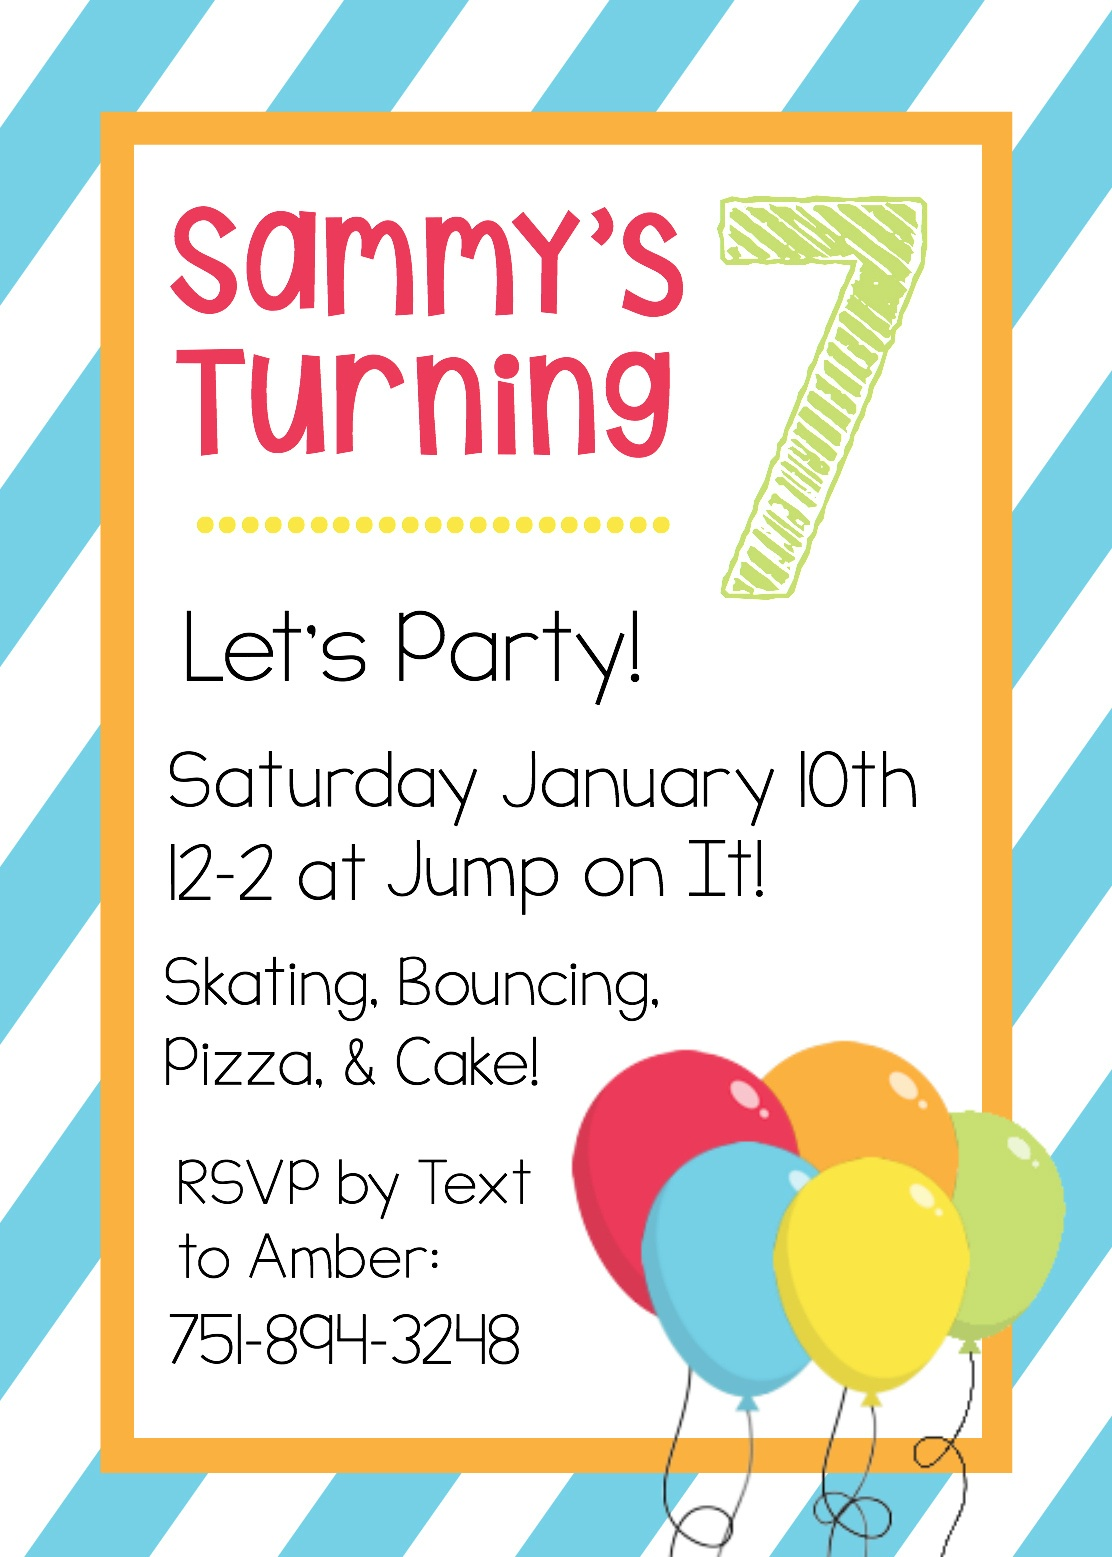 Free Printable Birthday Invitation Templates - Free Printable Birthday Invitation Cards